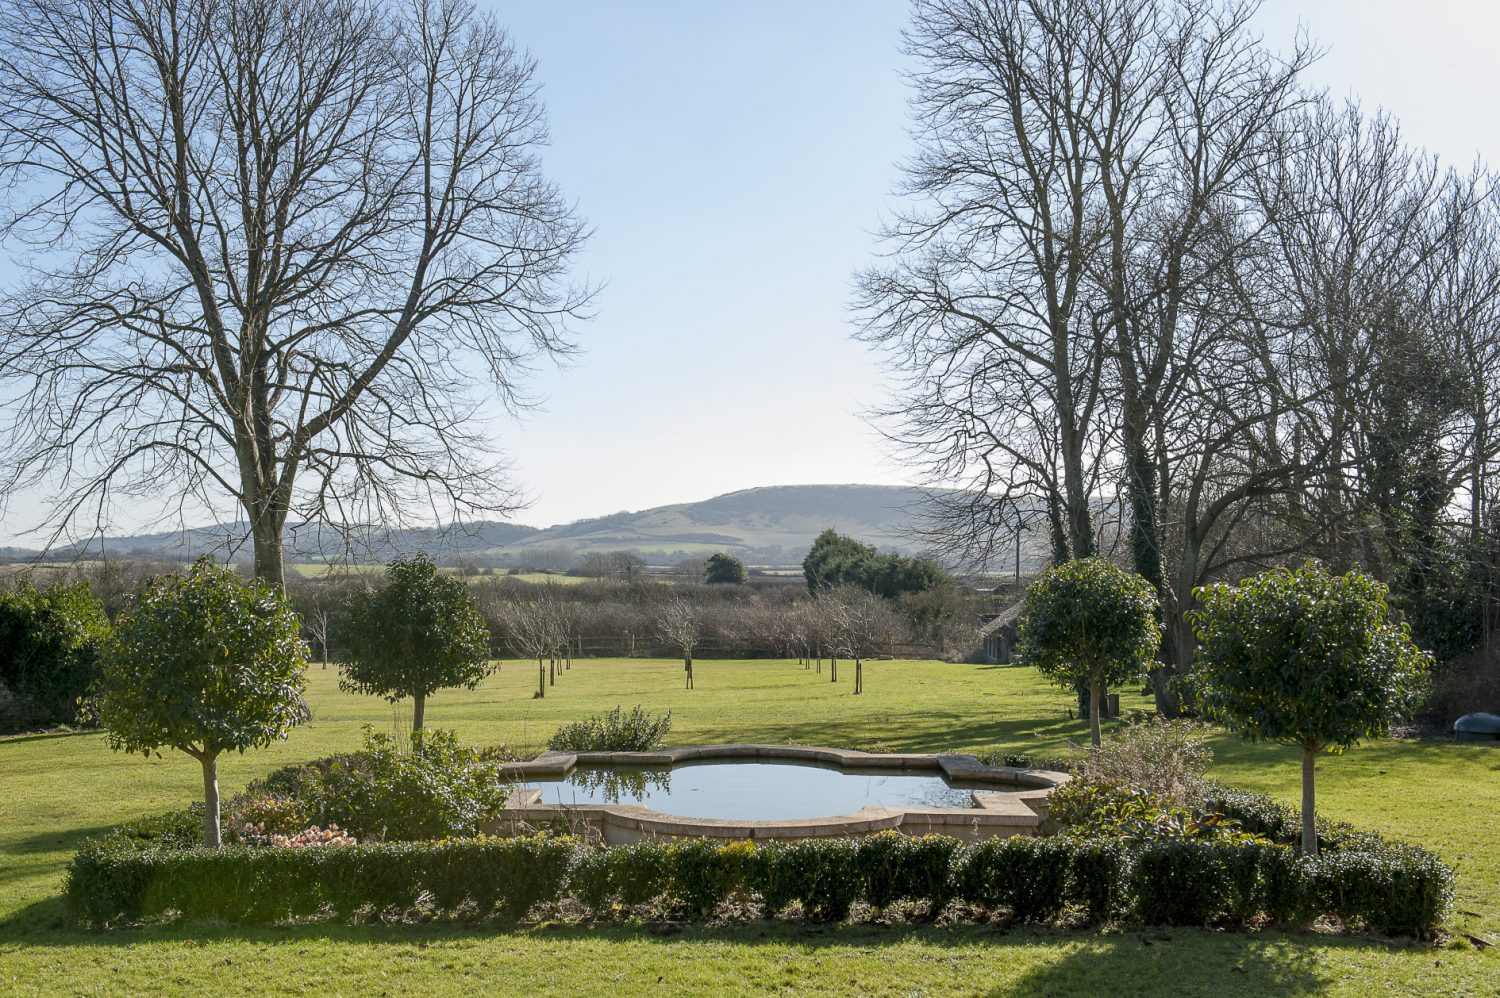 When Nina and Nick first took over the property, the garden was just a rural wasteland – a sea of mud, bramble and hawthorn. Over the years, like the house itself, the couple have painstakingly returned it to its former glory